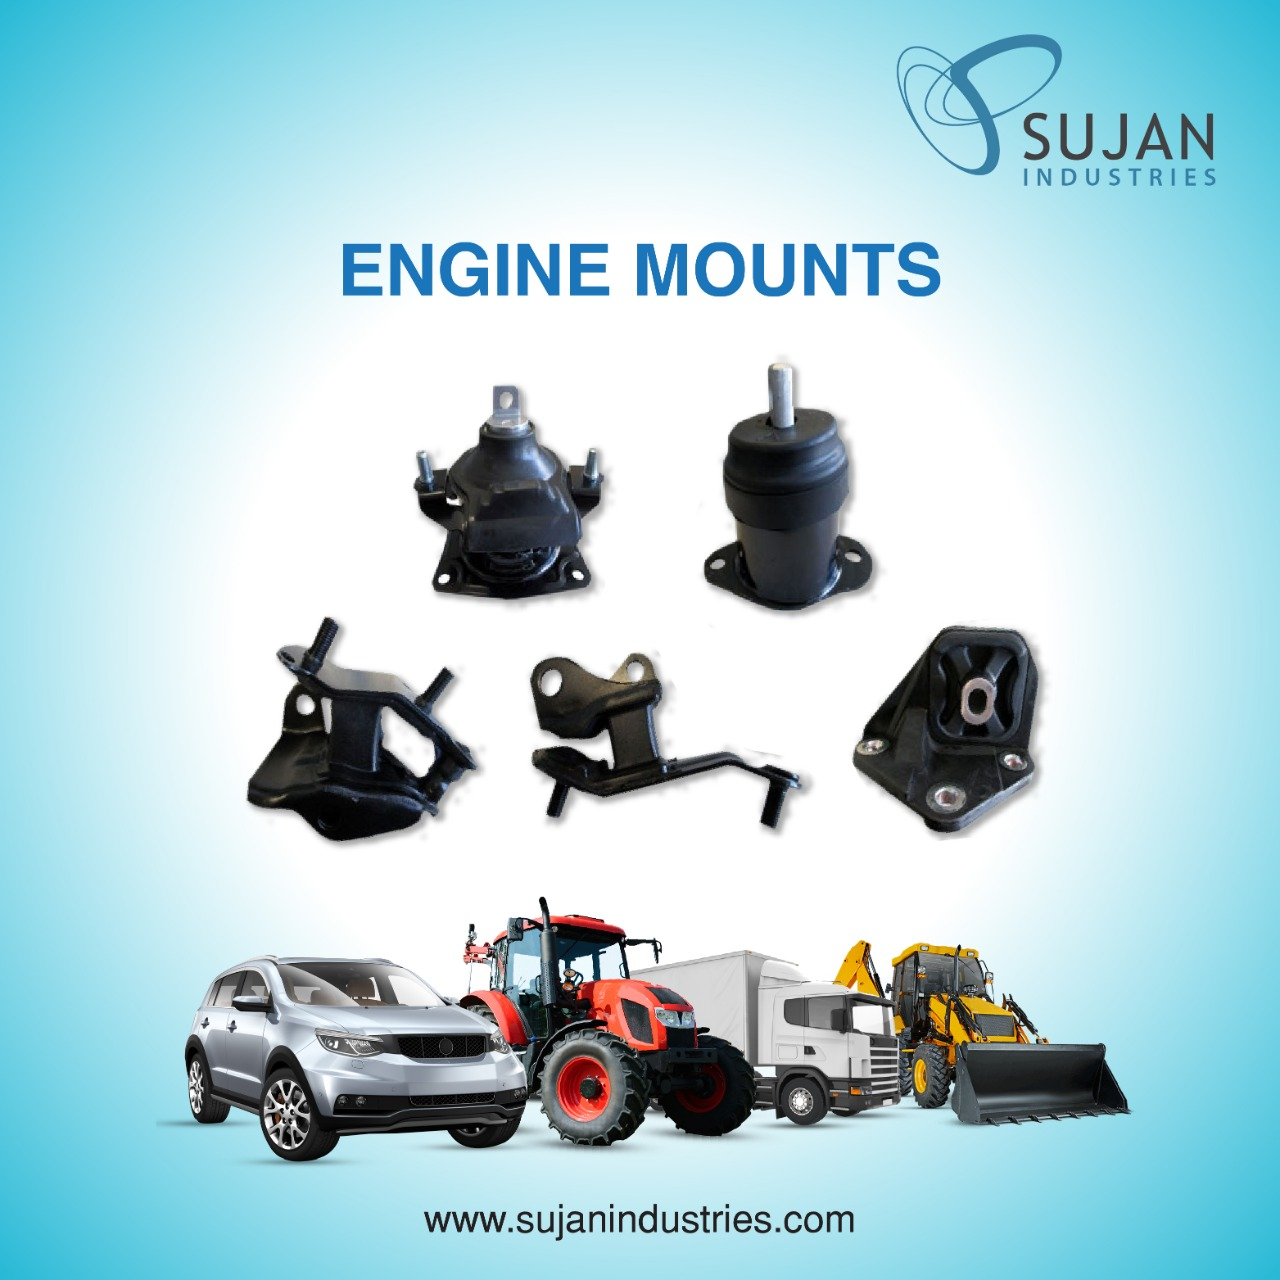 Engine Mounts : An Overview With Works and Importance in A Vehicle